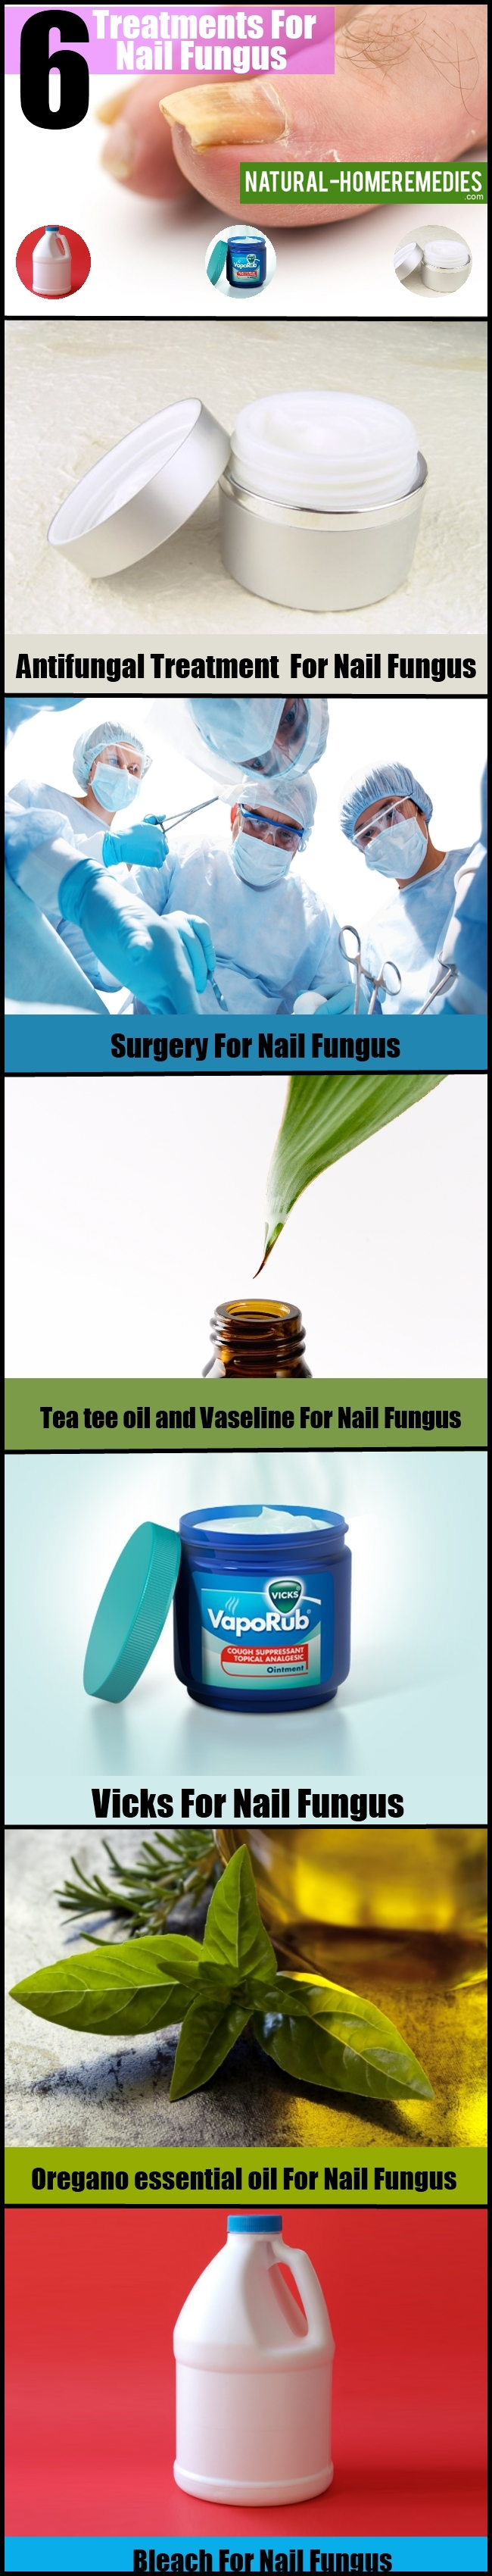 6 Treatments For Nail Fungus